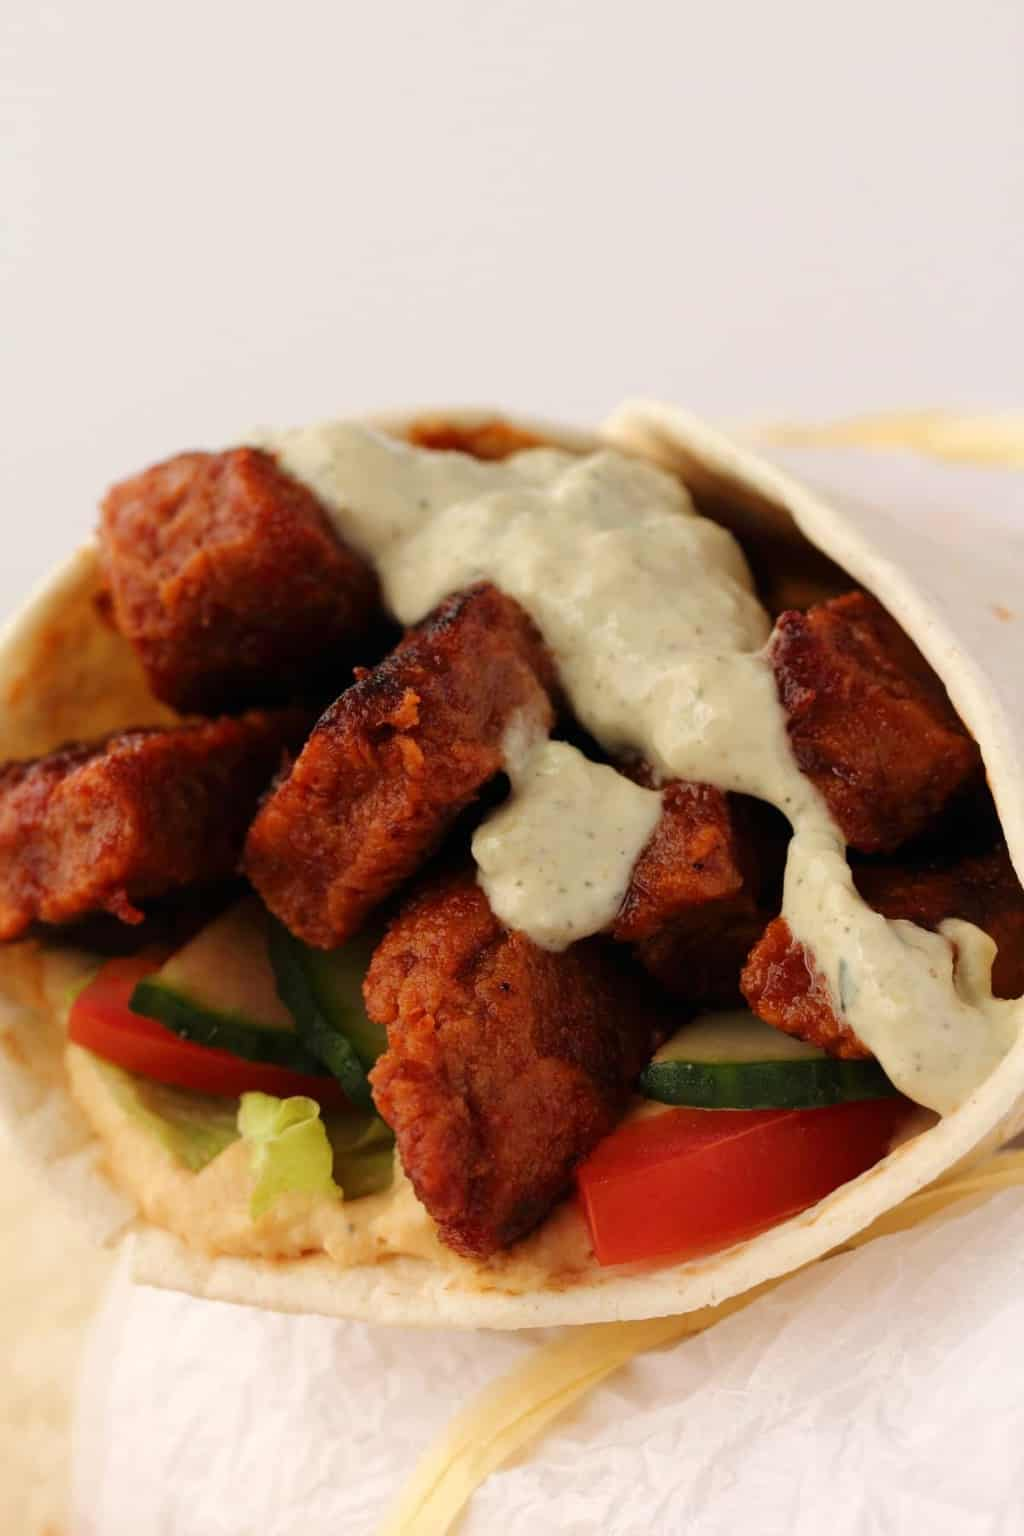 Vegan Shawarma stuffed with seitan and veggies and topped with vegan tzatziki.